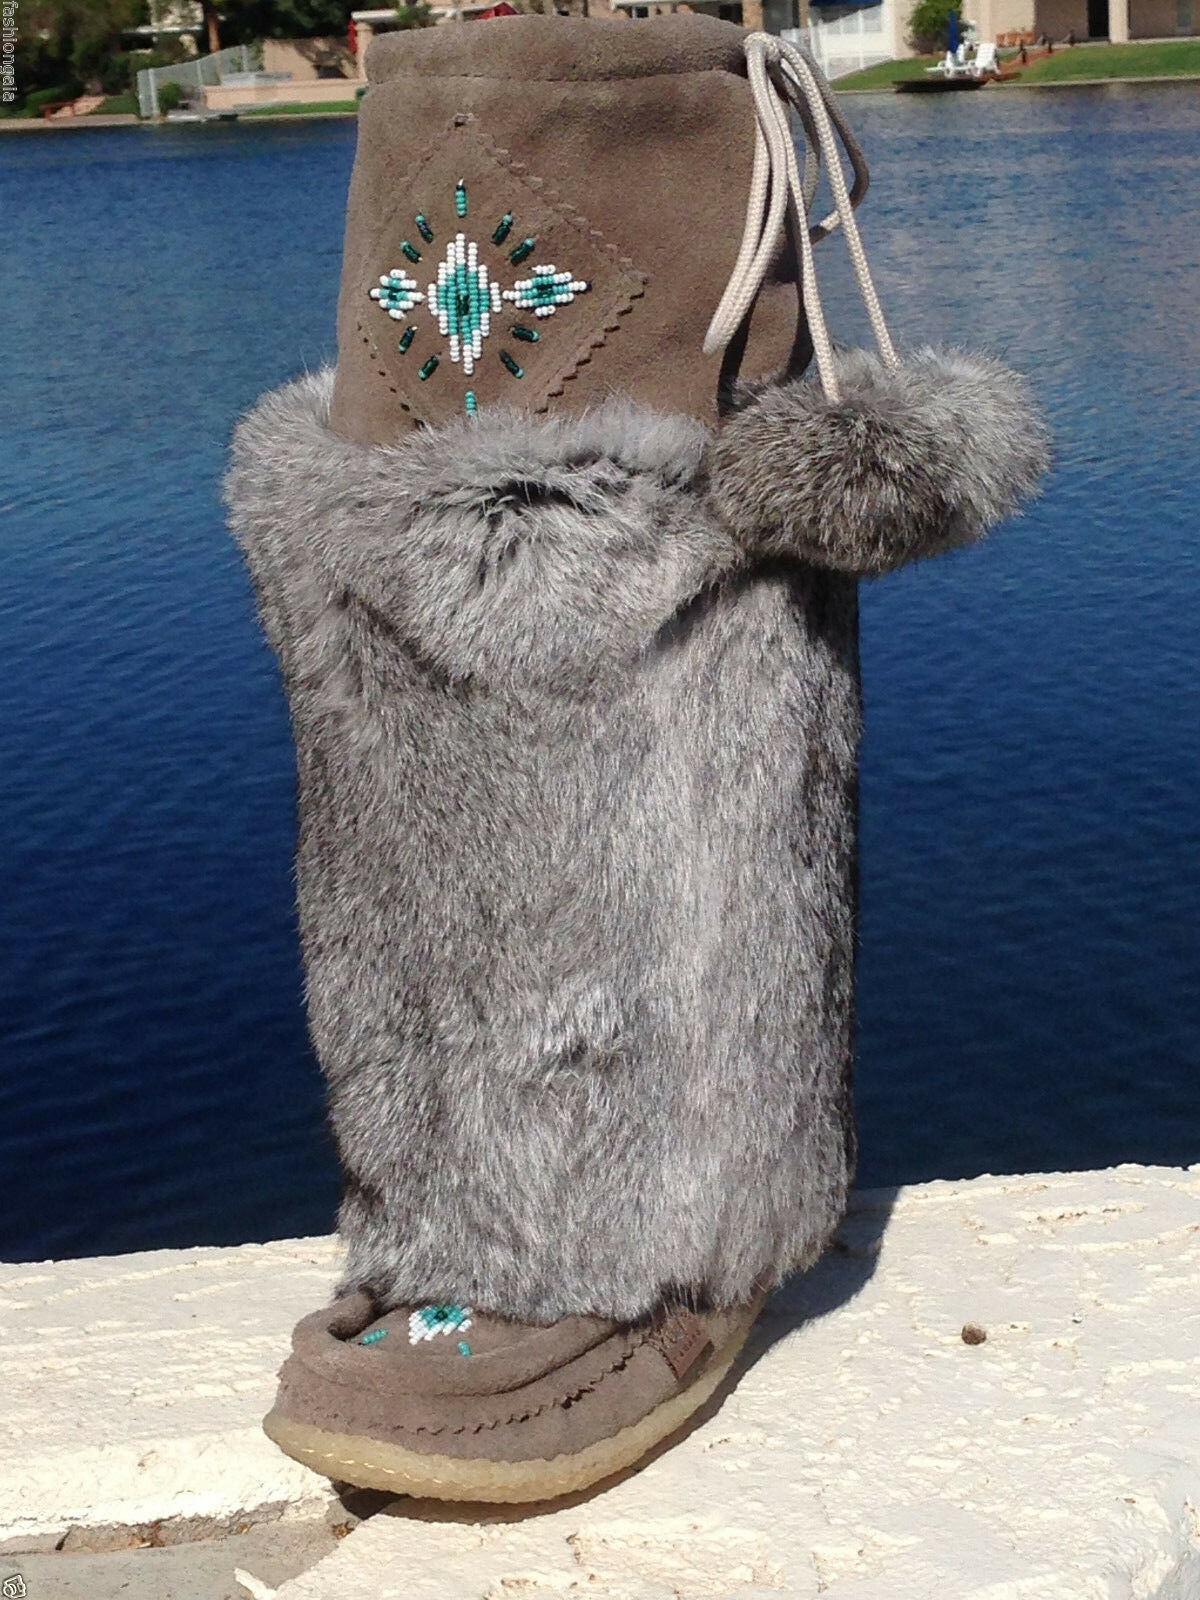 NIB CANADIAN WOMENS TALL GRAY SUEDE MUKLUKS WITH GRAY RABBIT FUR